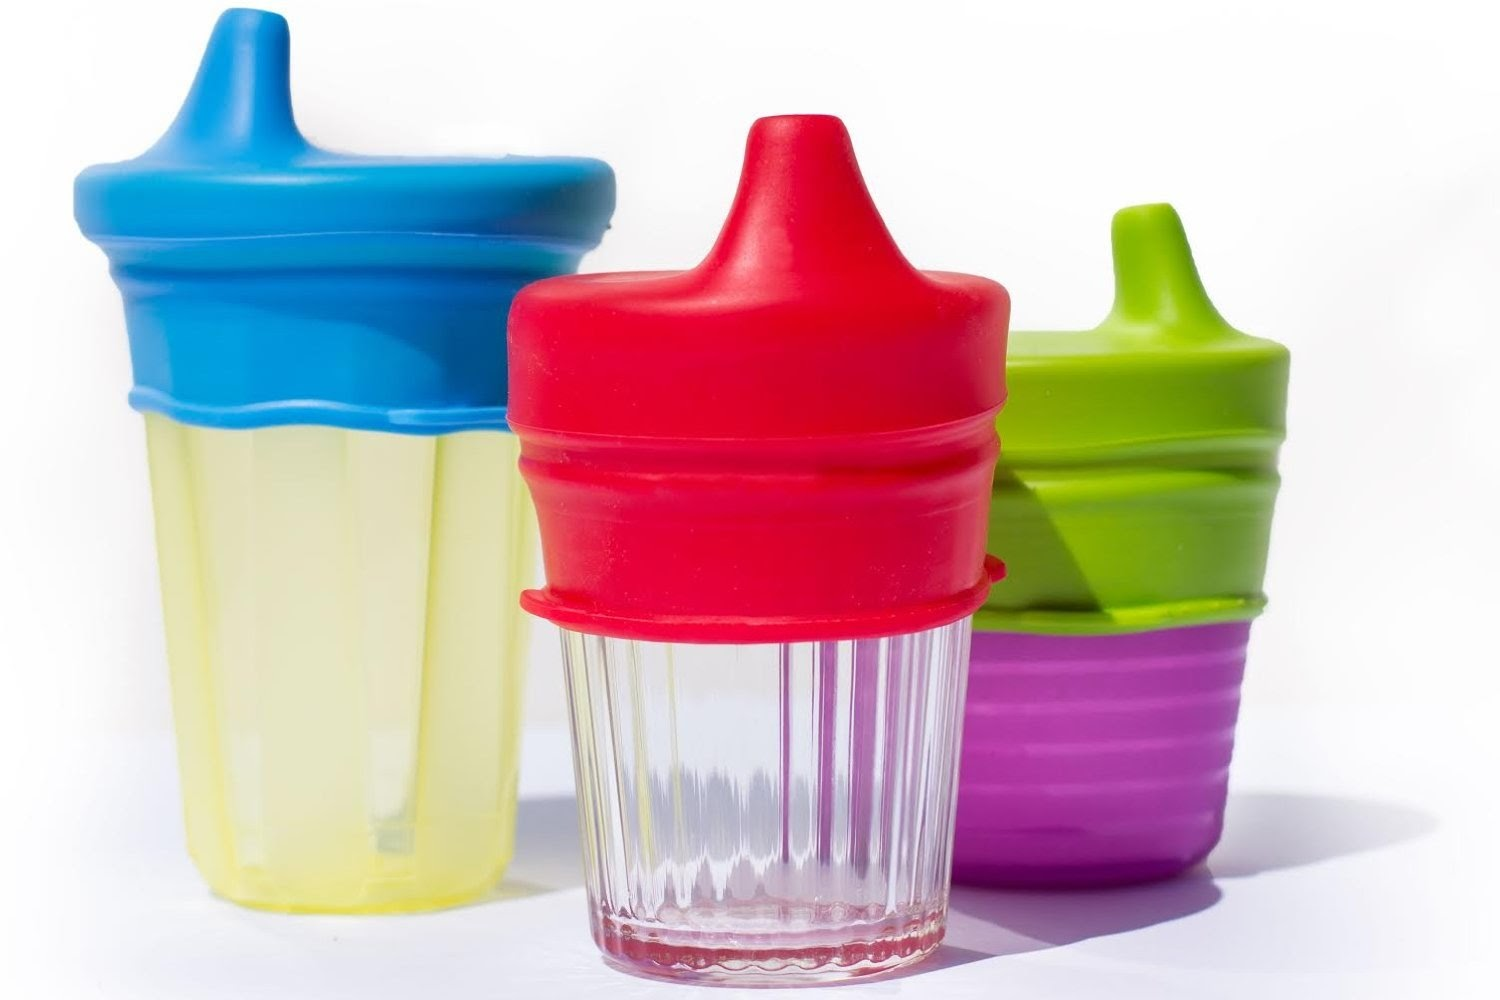 6 Pack of O-Sip! Silicone Sippy Lids a8fbadb9c26a